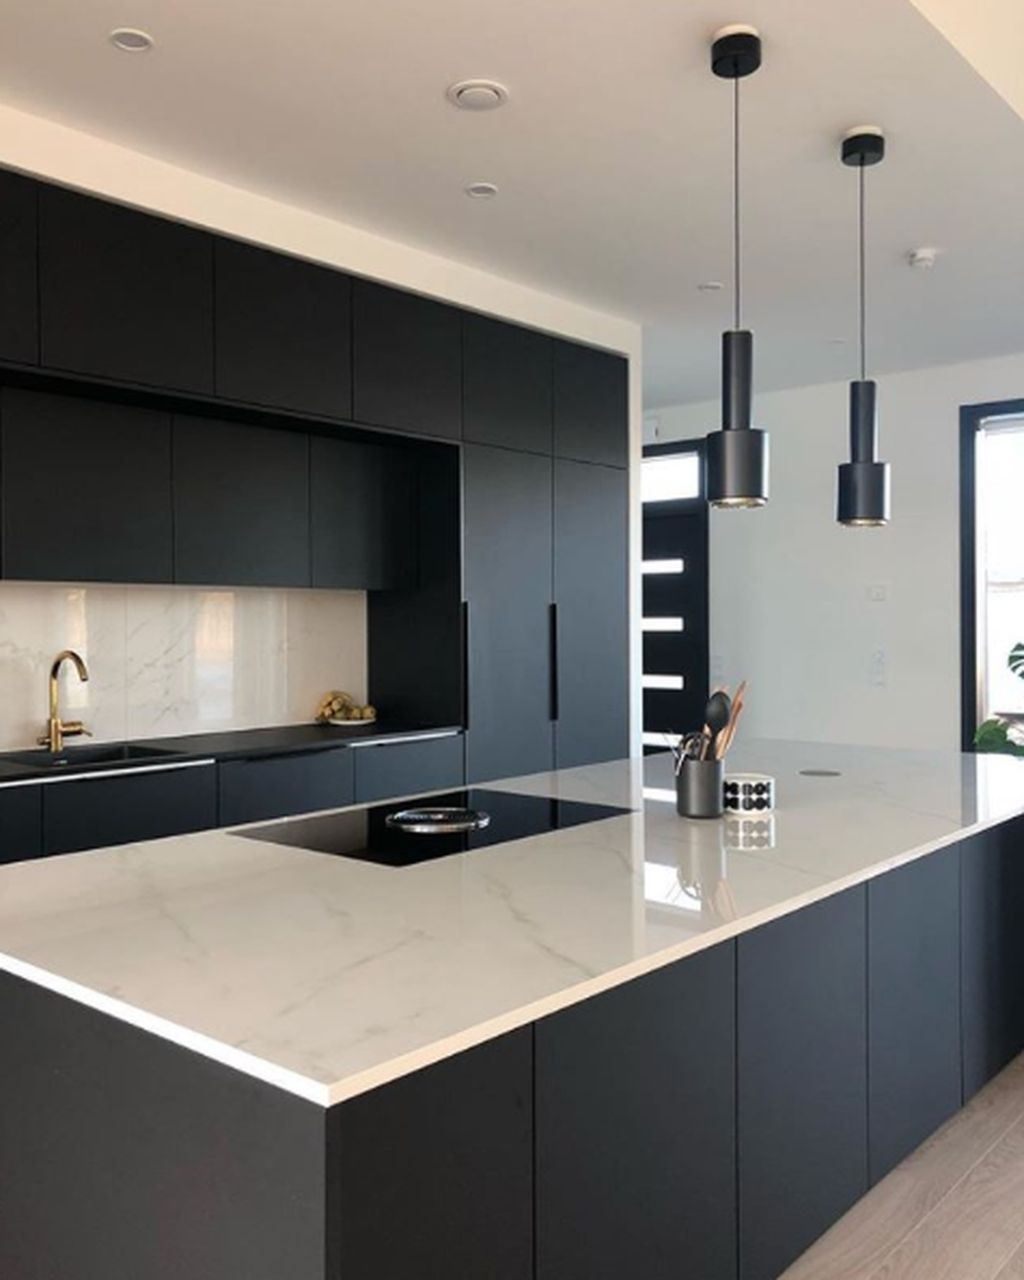 50 Black Kitchen Design Ideas With White Color Accent